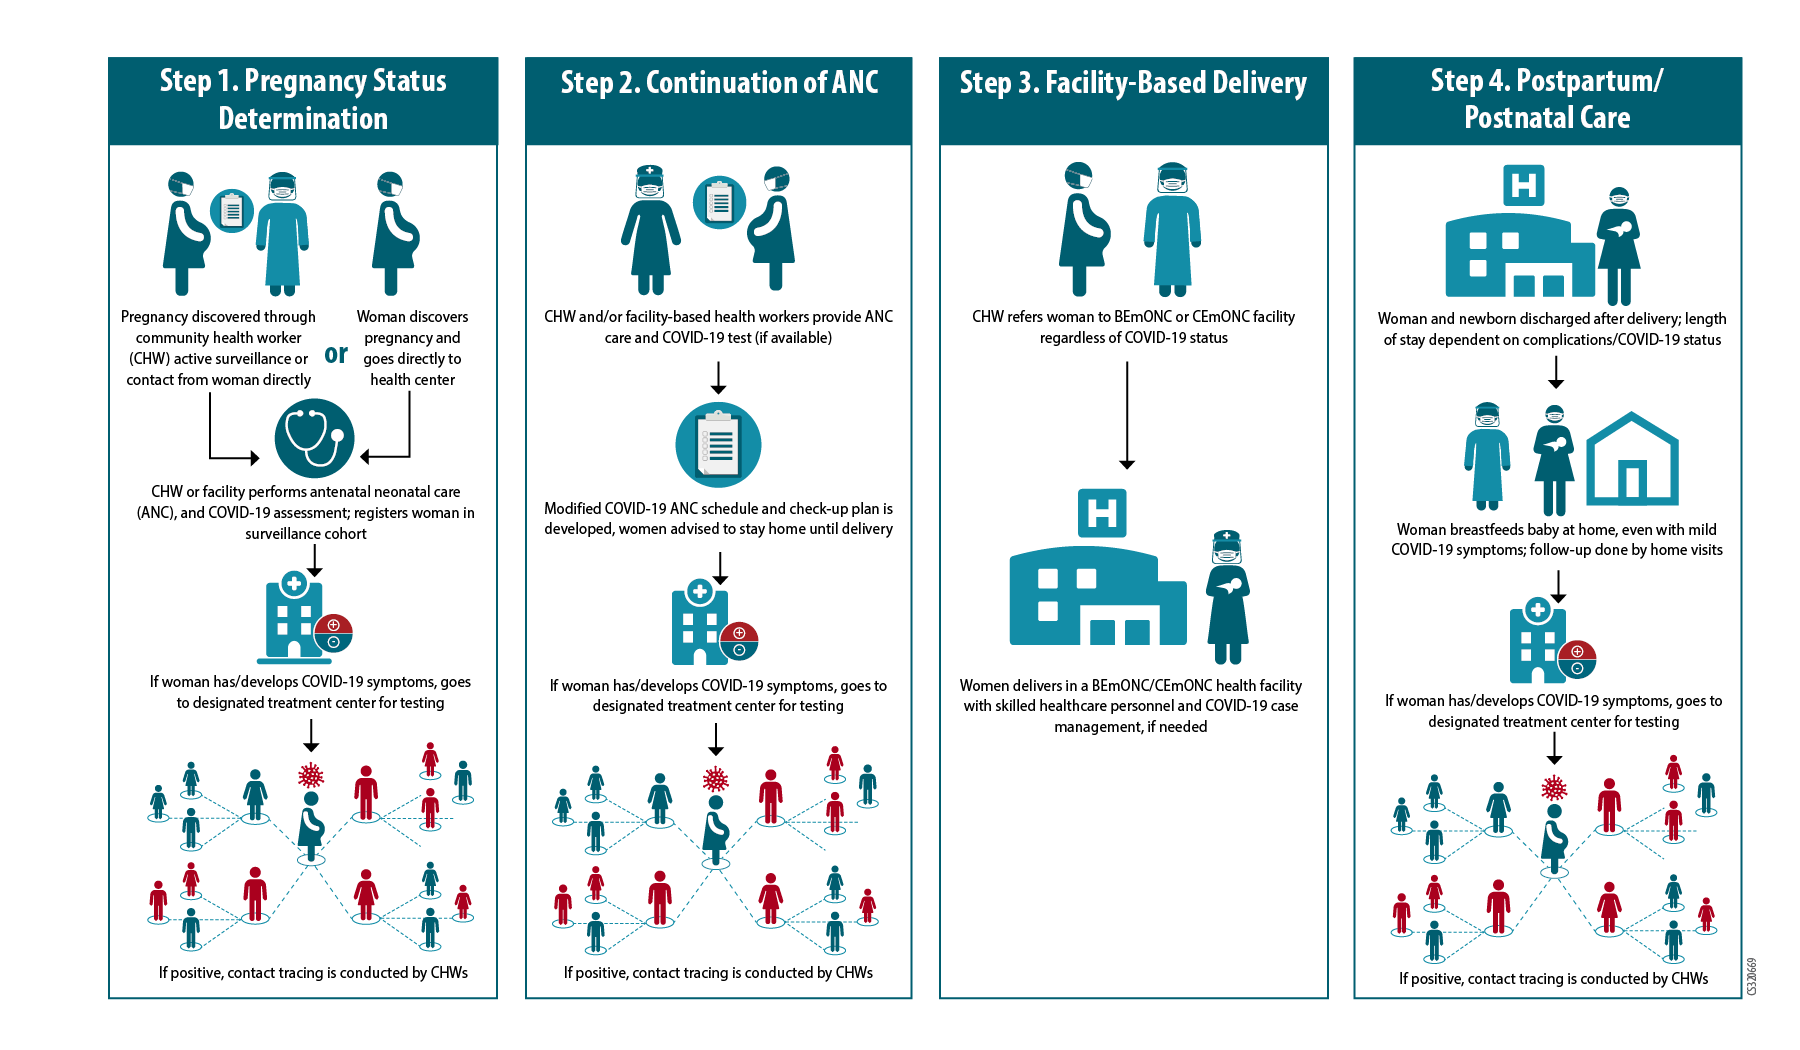 Flow Chart image summarizing steps to take for maternal, neonatal, and child health services during COVID-19